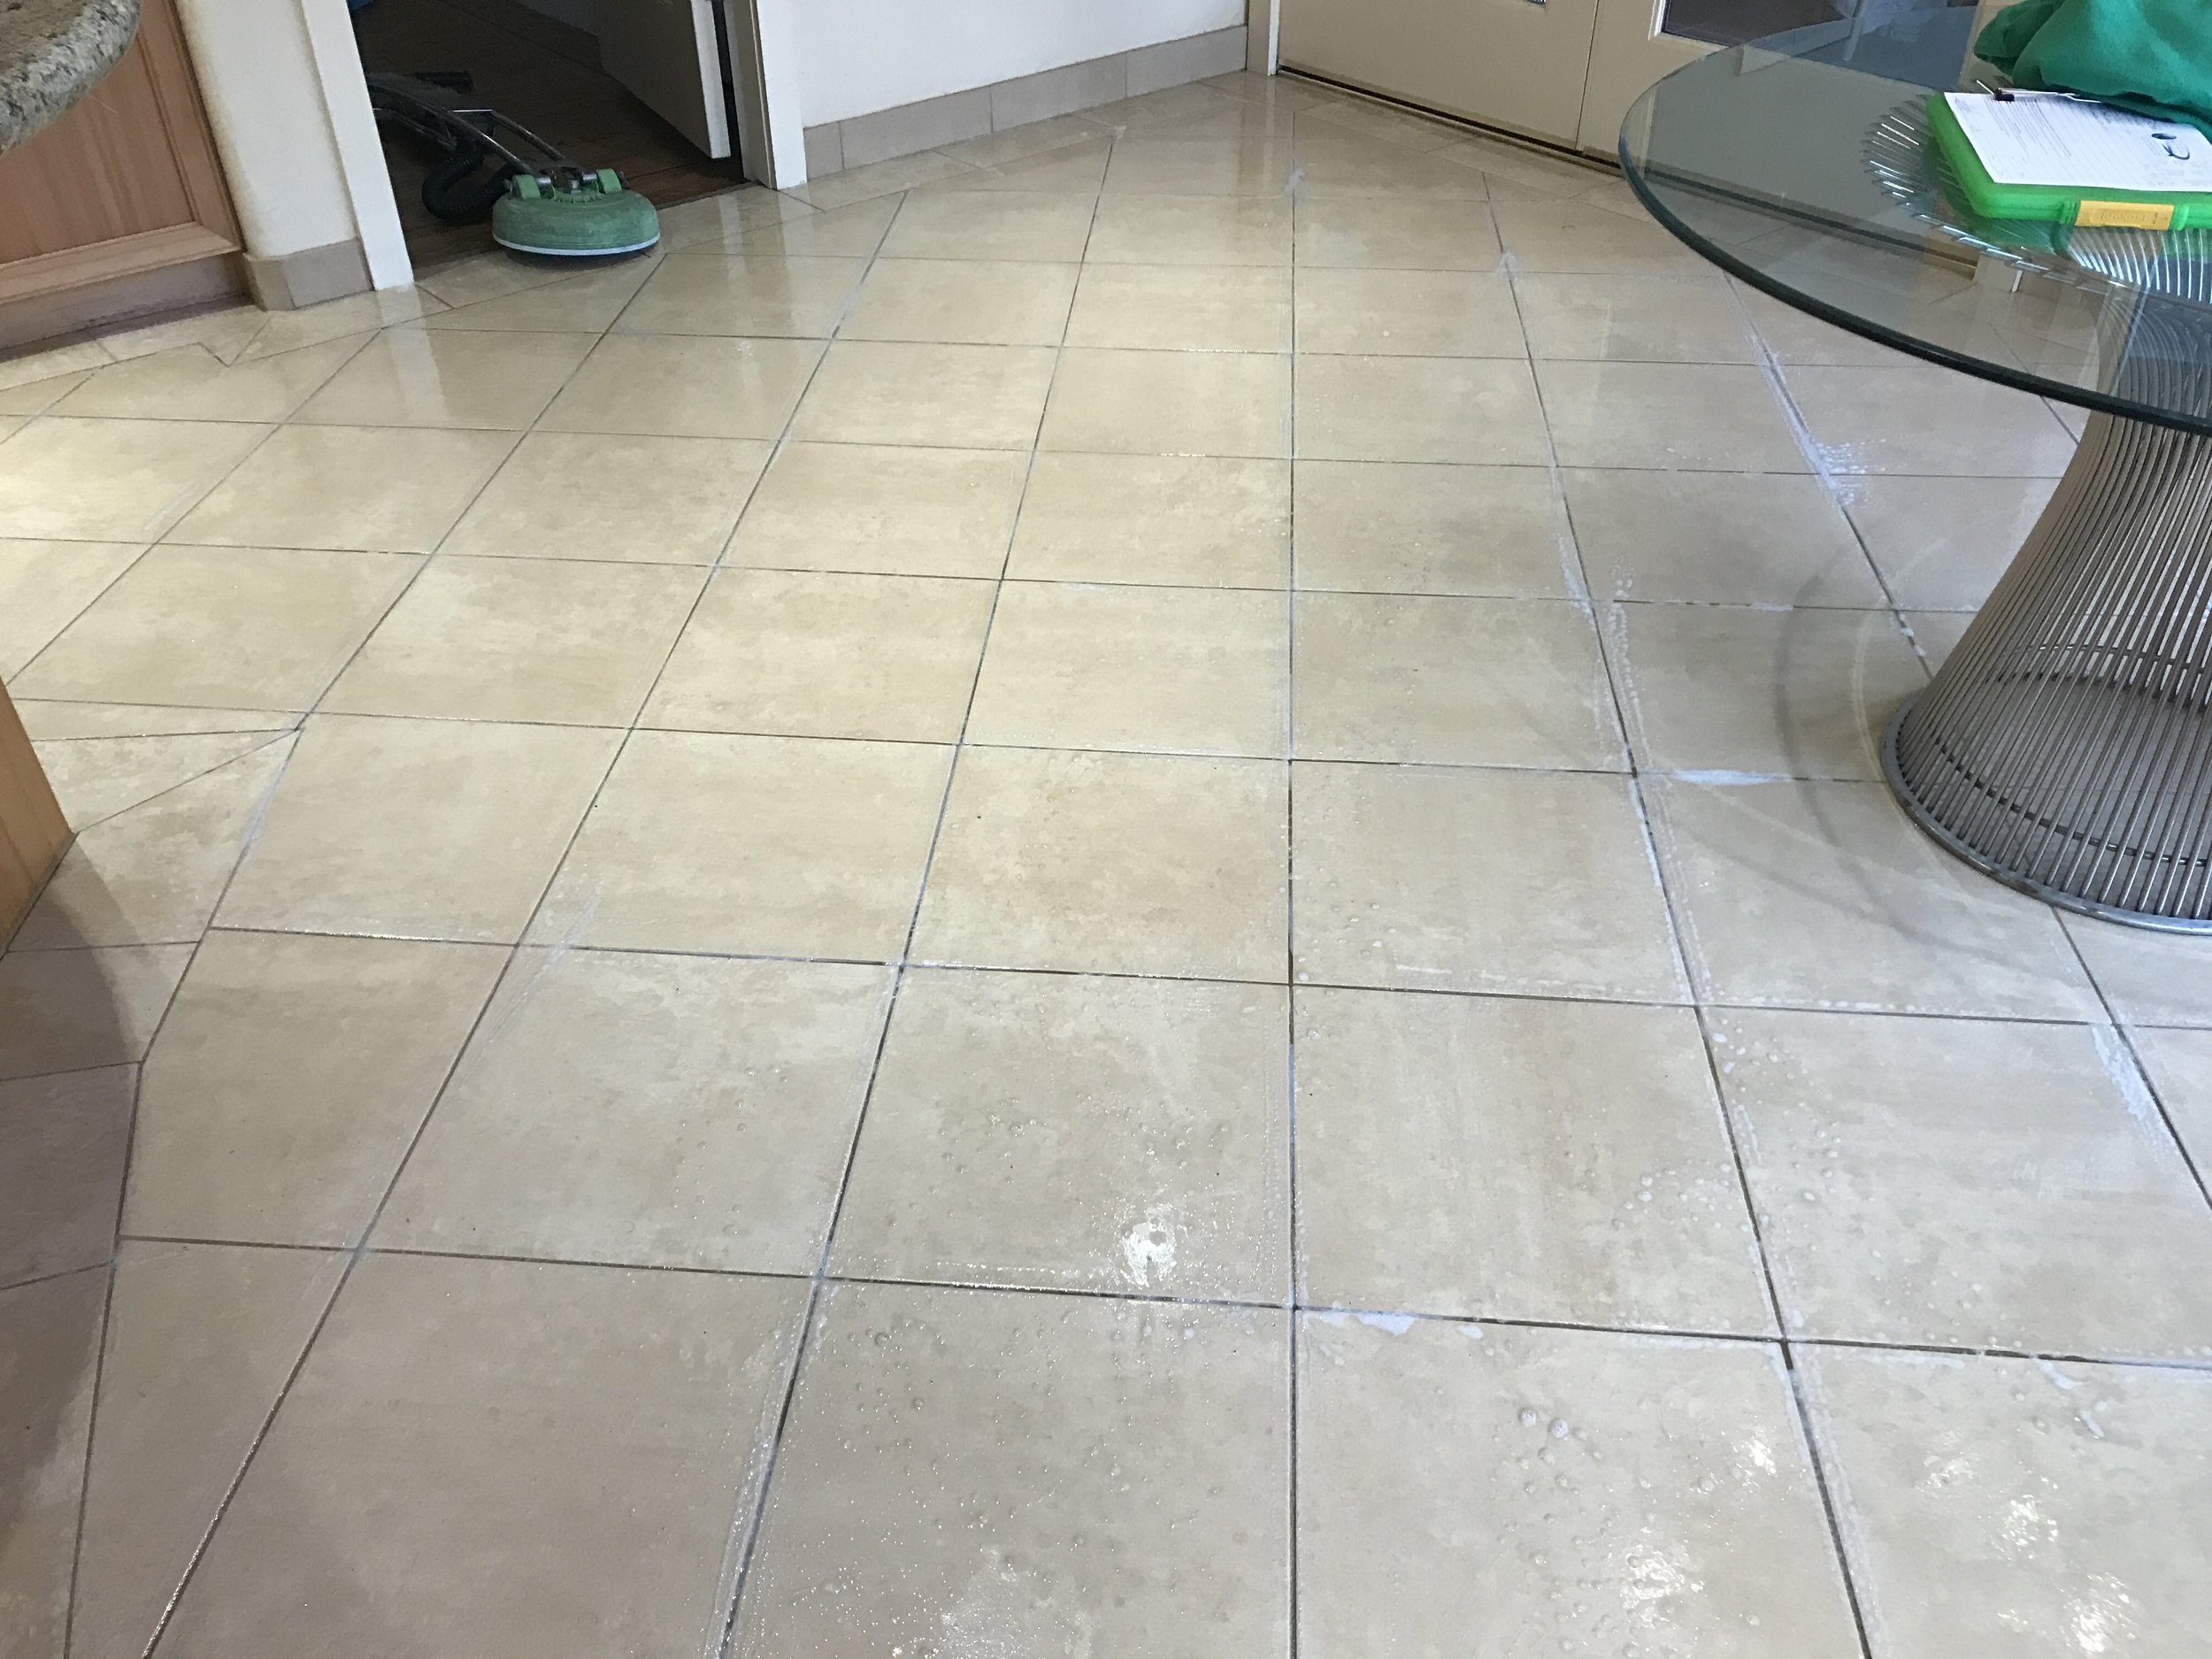 Kitchen floor Tile and Grout Cleaning BEFORE...